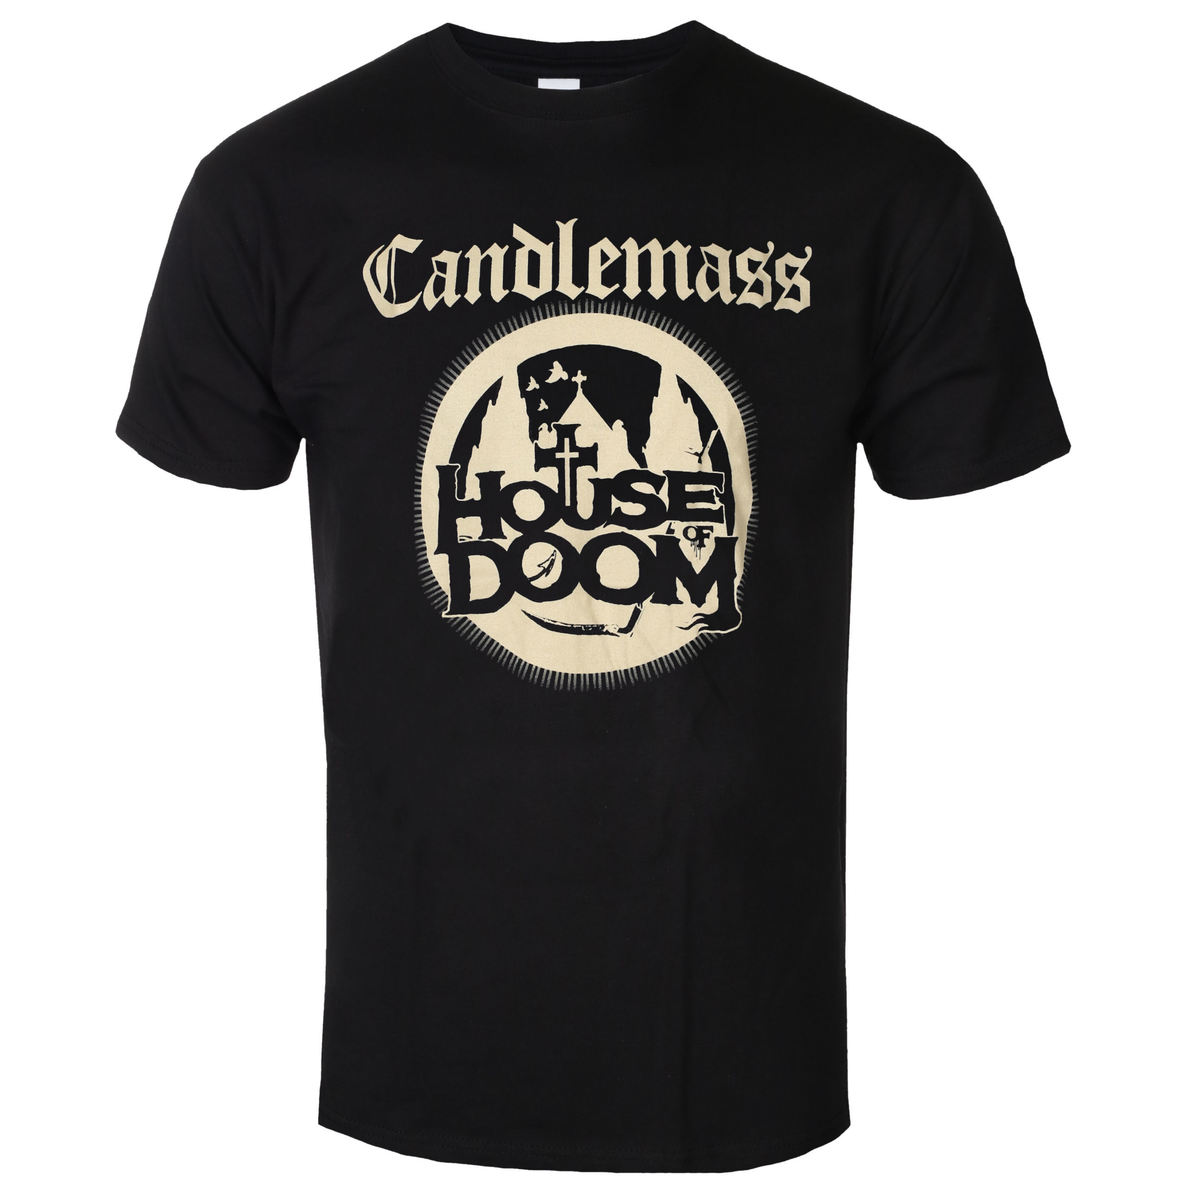 NAPALM RECORDS Candlemass House Of Doom černá